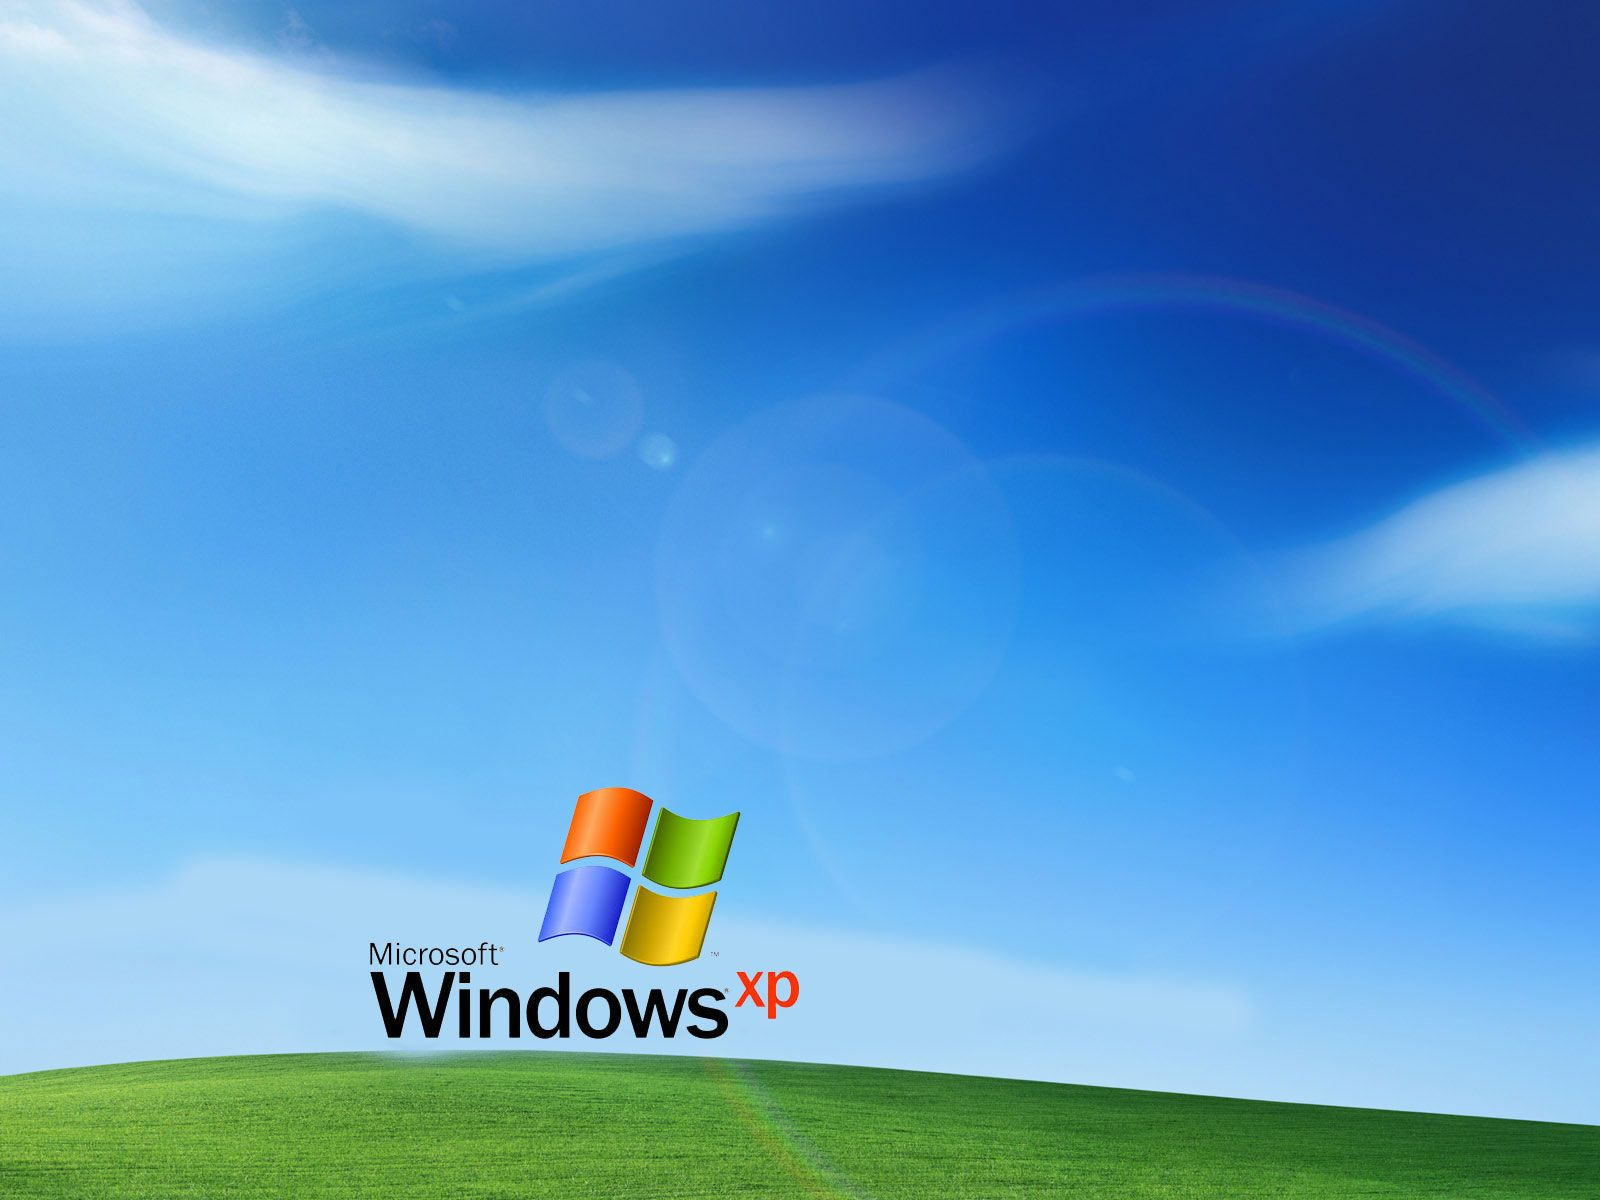 desktop wallpapers for windows xp wallpapers hd wallpapers